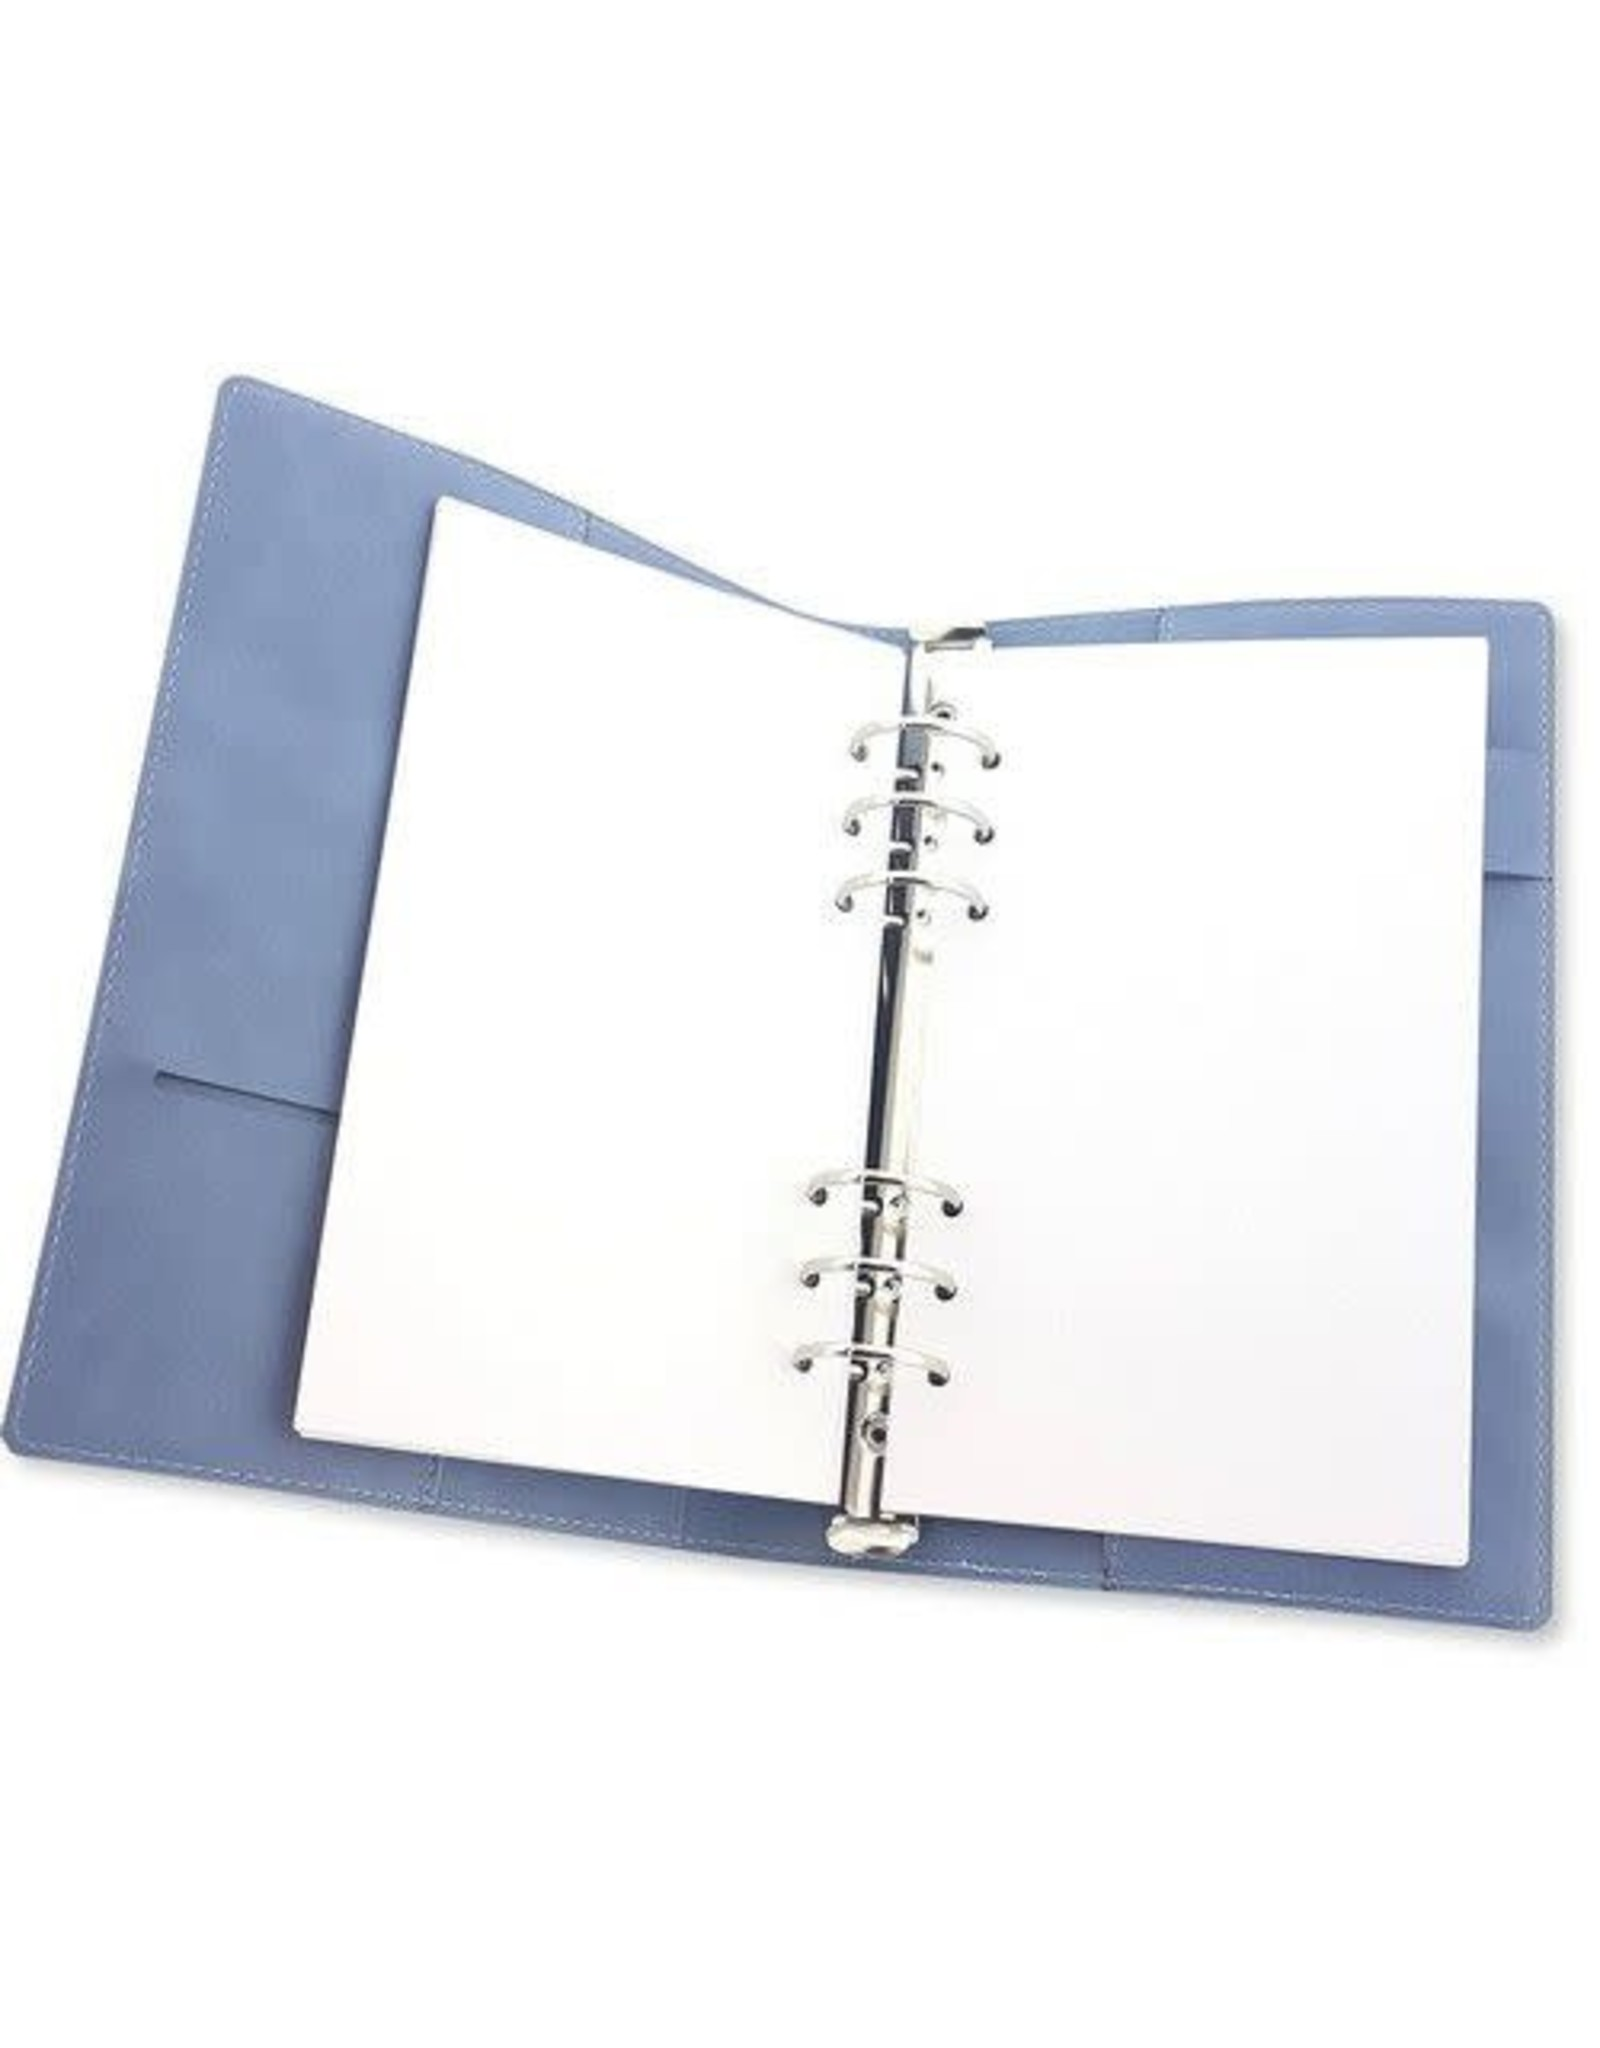 Craft Emotions CraftEmotions Ringband Planner - voor papier A5-148x210mm - Jeans – lichtblauw PU leather - Paper not included